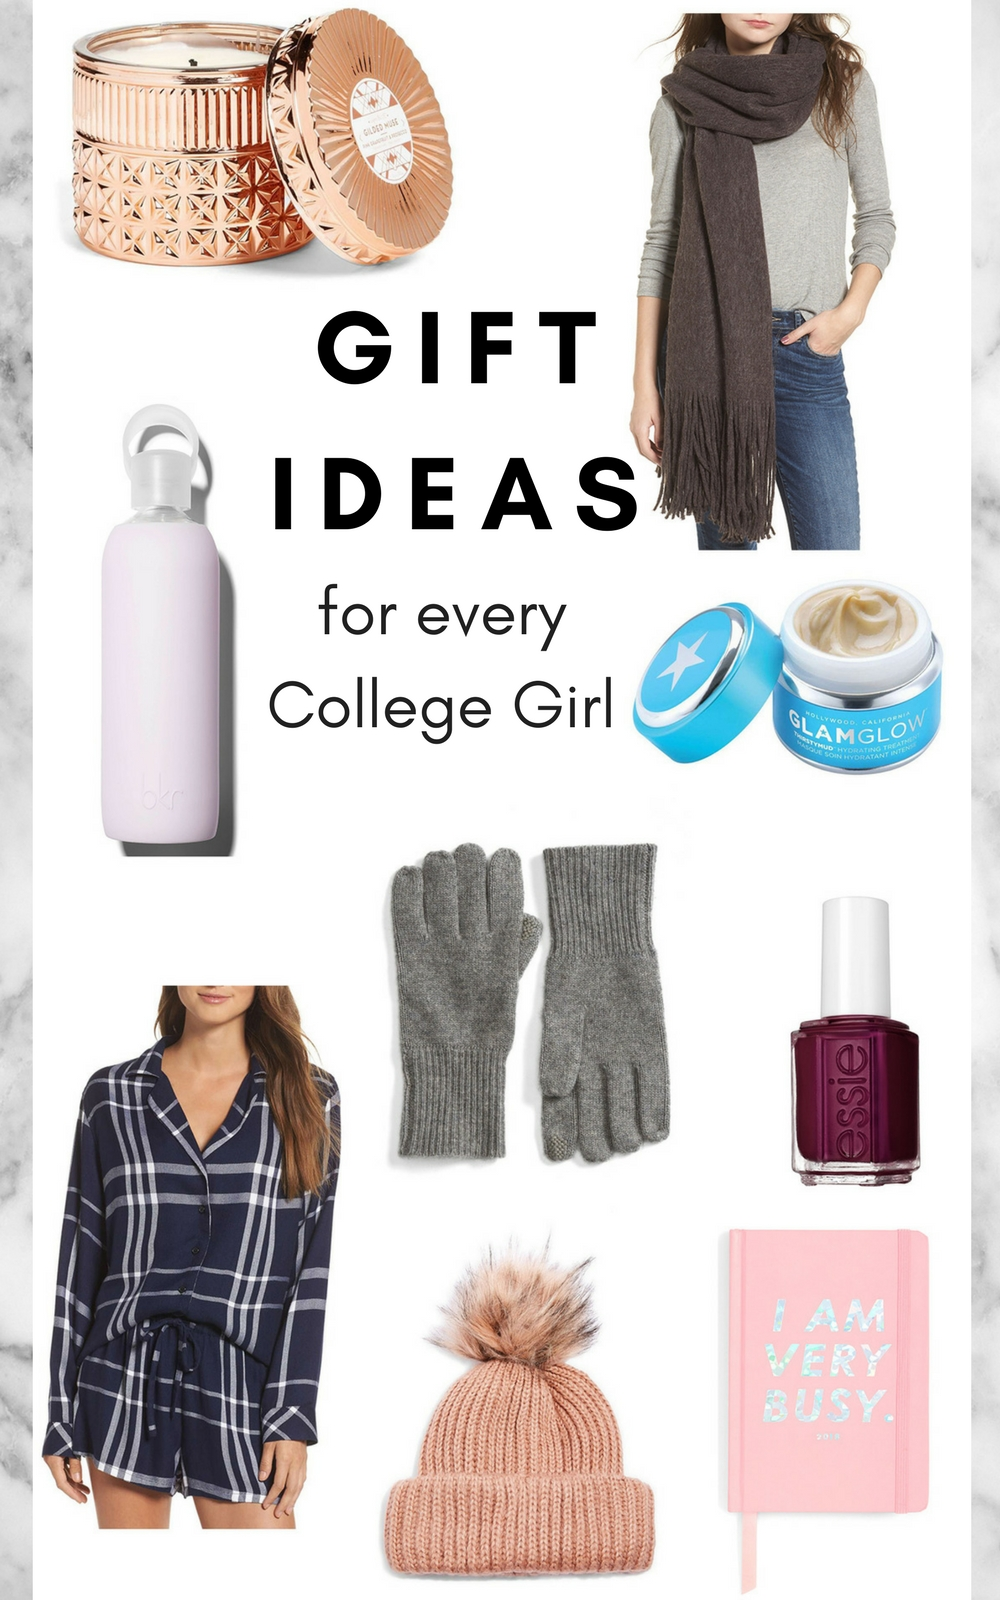 10 Attractive Gift Ideas For College Girls gift ideas for college girls 2017 a gift guide for the college girl 2021